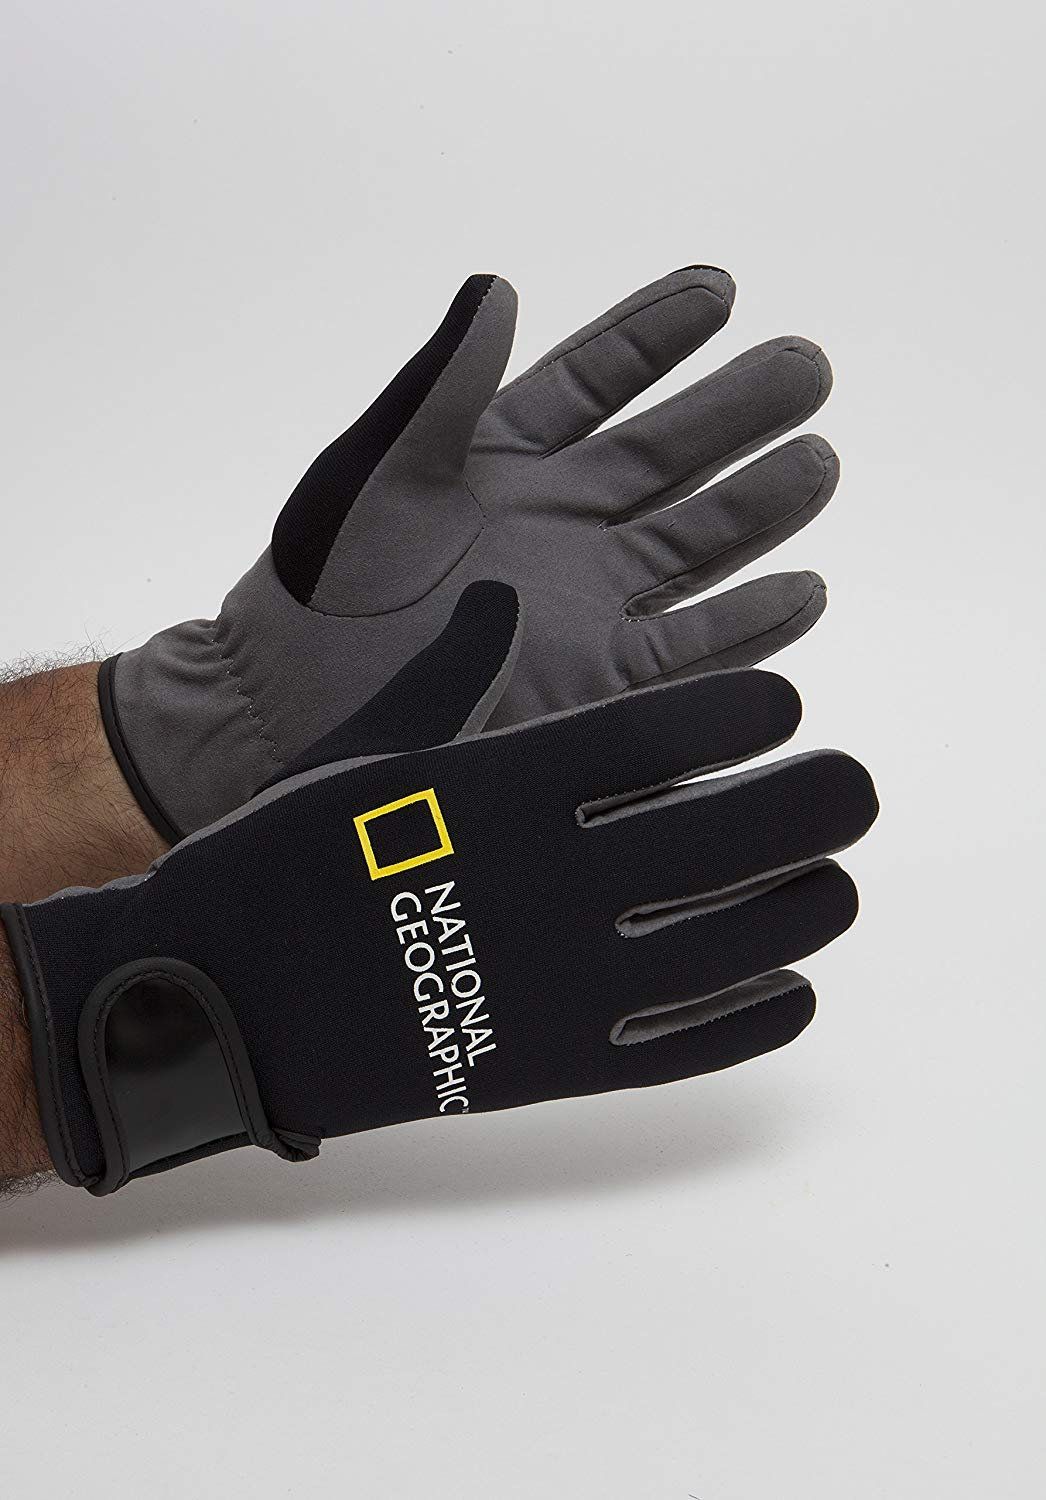 National Geographic Snorkeler Water Sports Glove